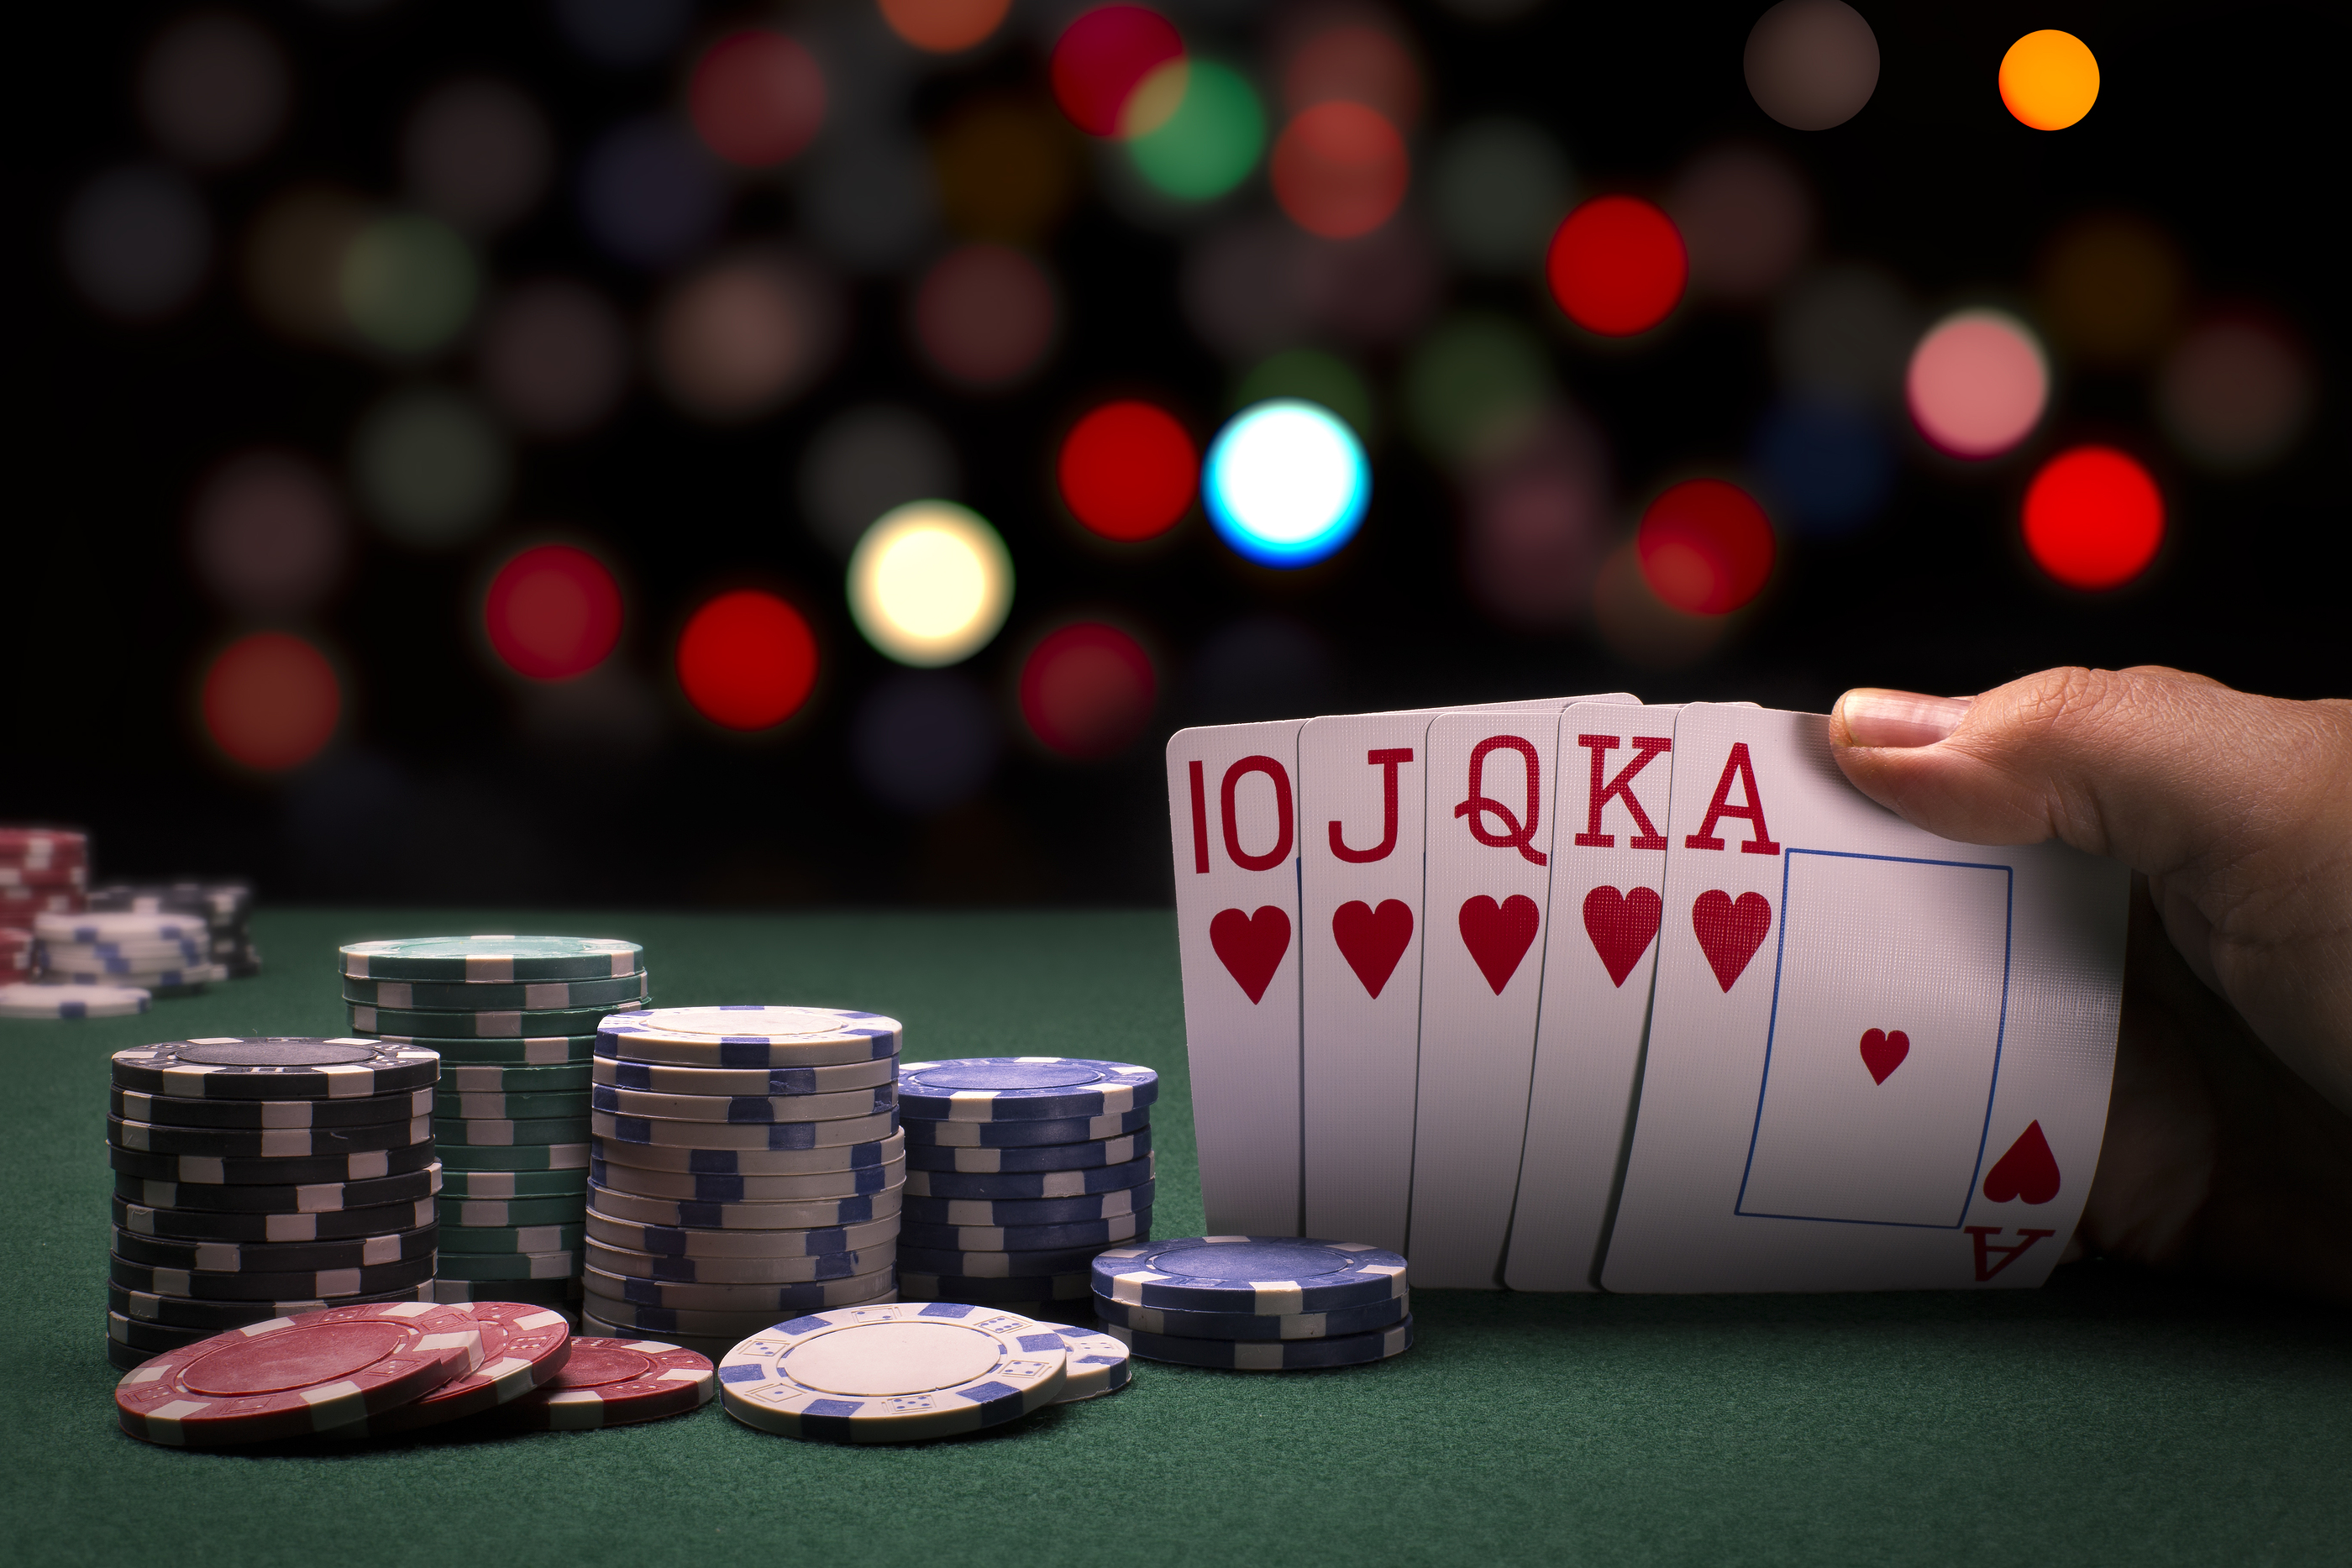 Where to play blackjack online for real money